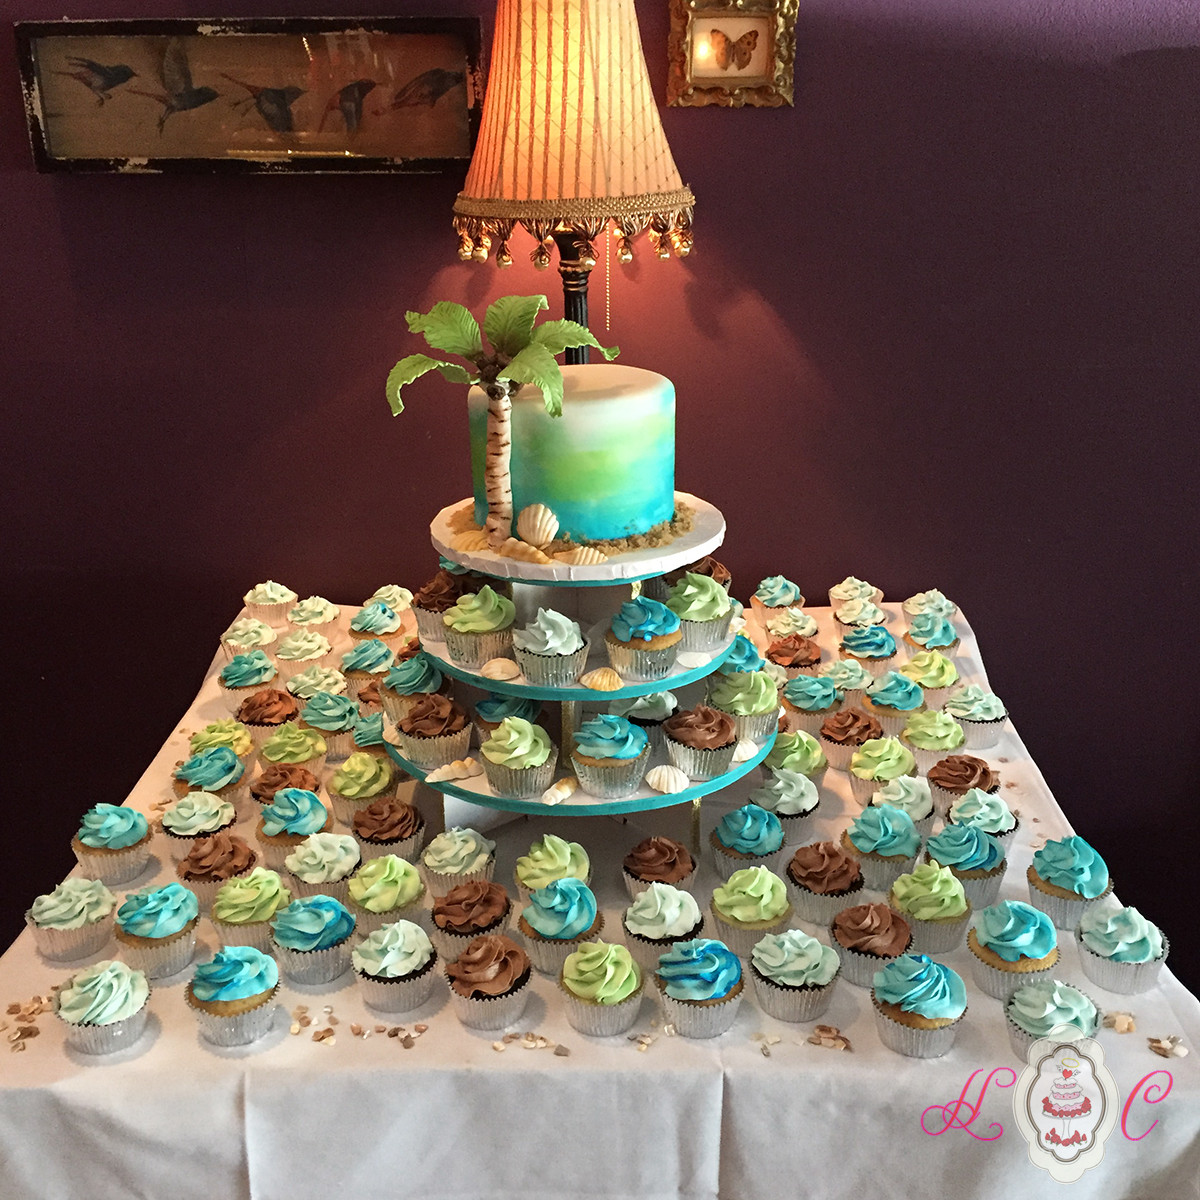 Wedding Cup Cakes  Wedding Cakes in Marietta Parkersburg & More Heavenly